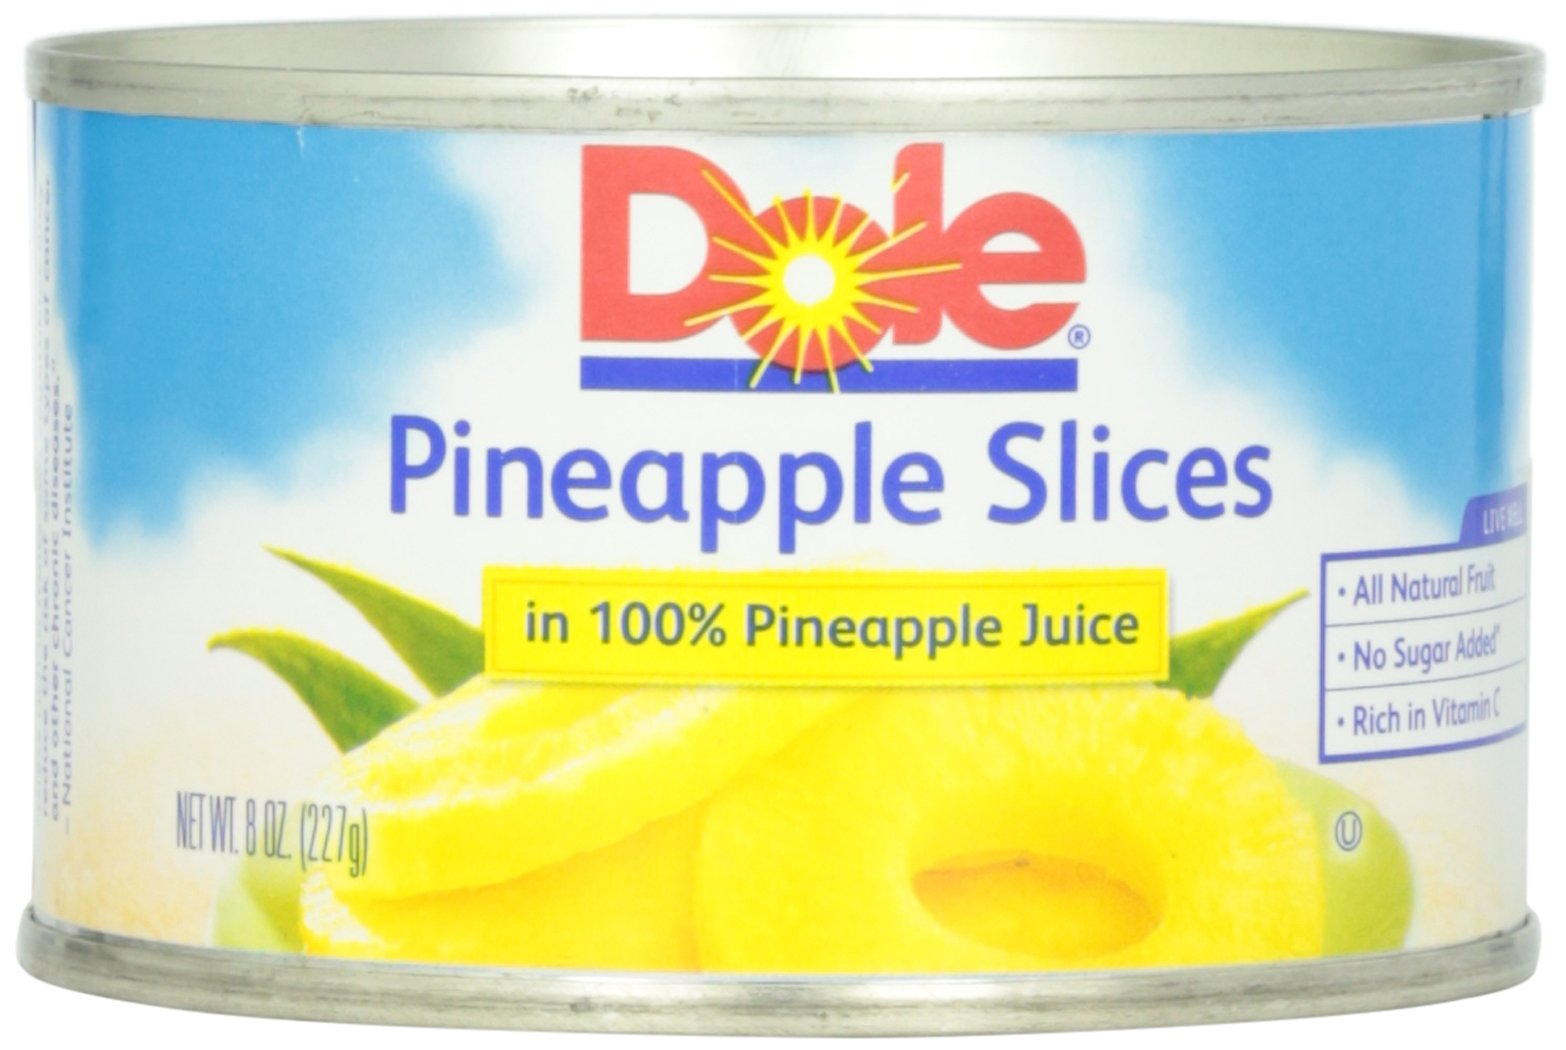 Dole Pineapple Slices in Juice, 8-Ounce Cans (Pack of 24) by Dole